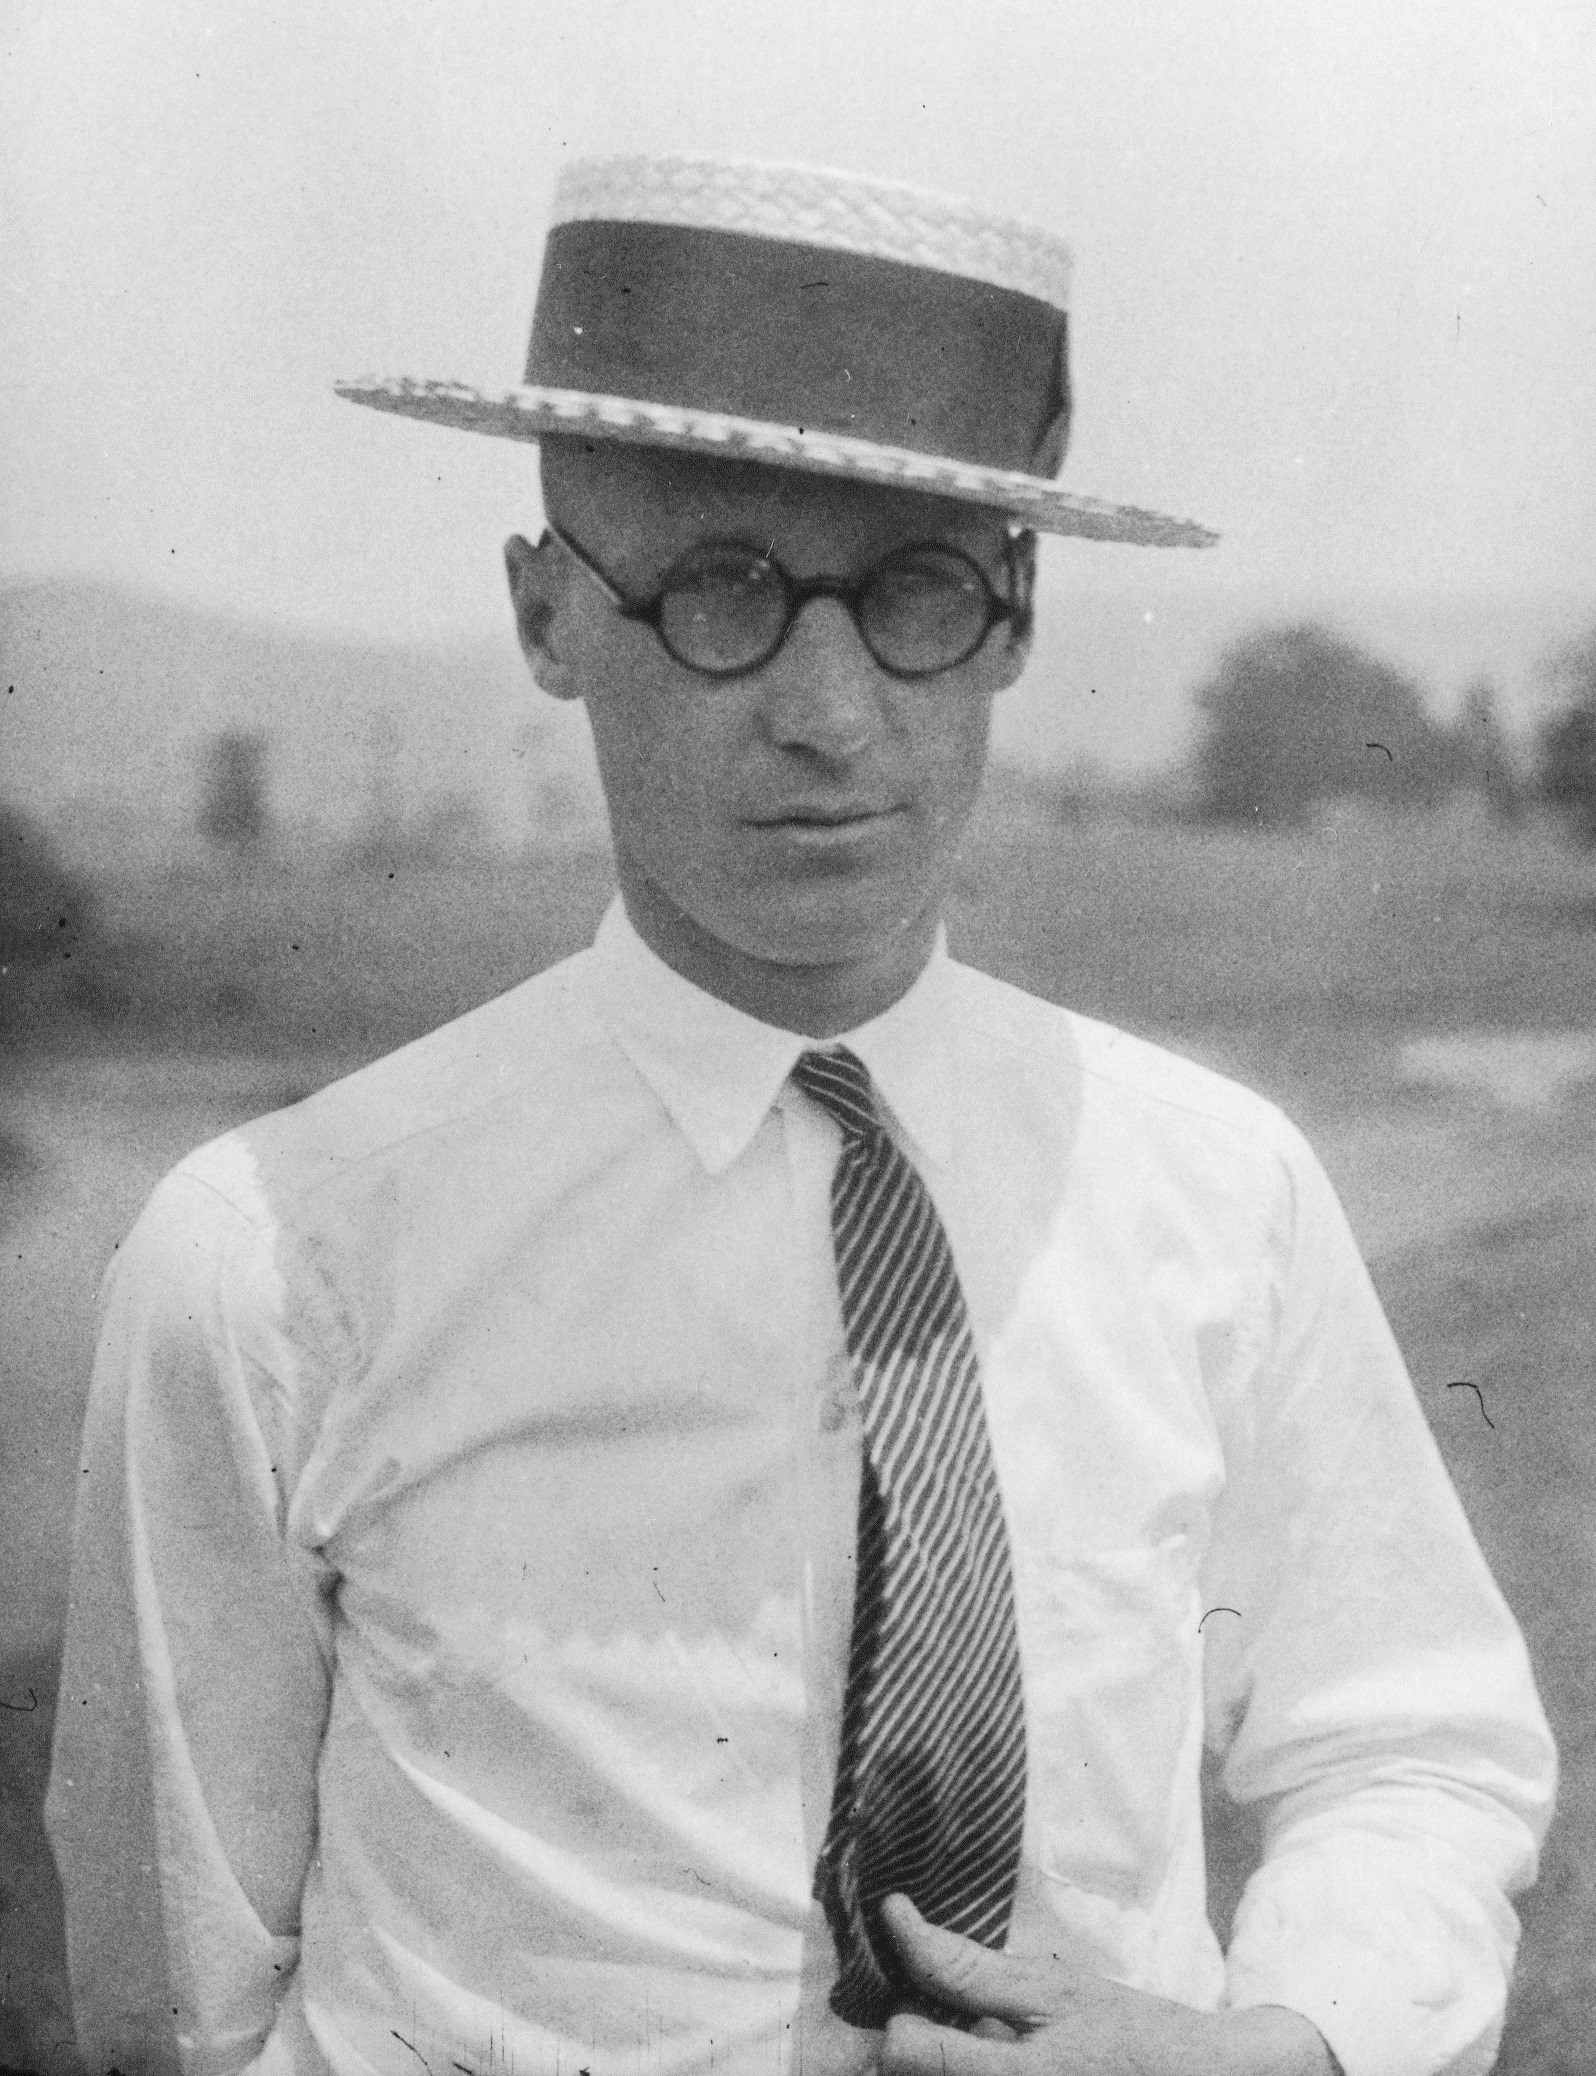 John T. Scopes, circa 1925, unpublished photograph donated to the Smithsonian Institute